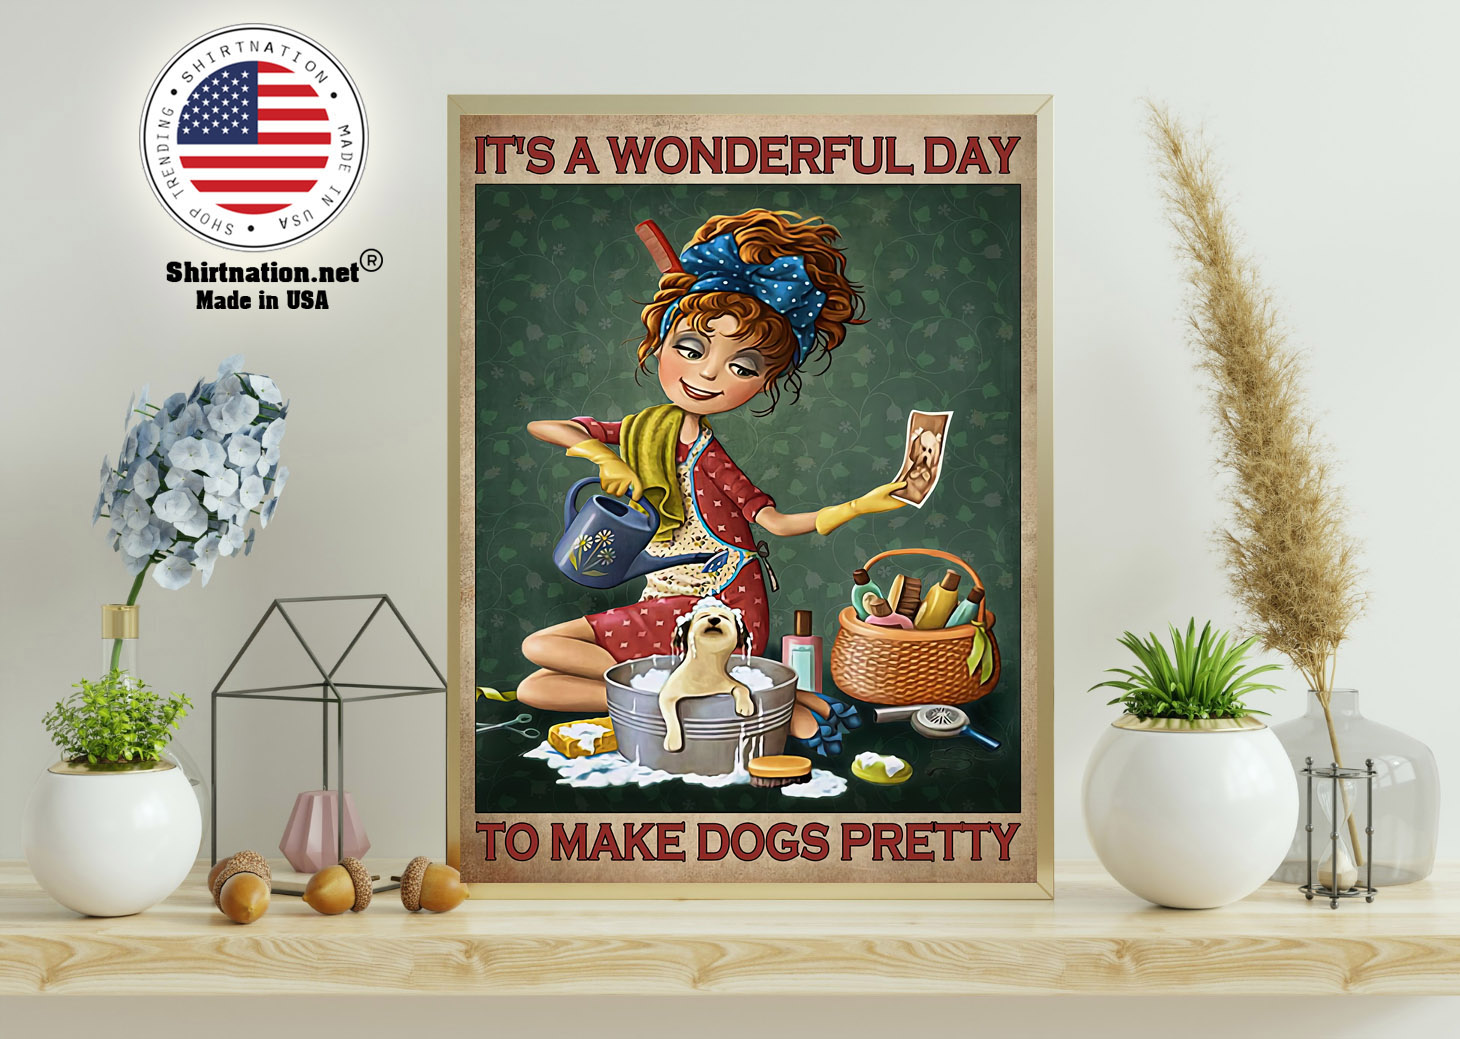 Grooming Its a wonderful day to make dogs pretty poster 11